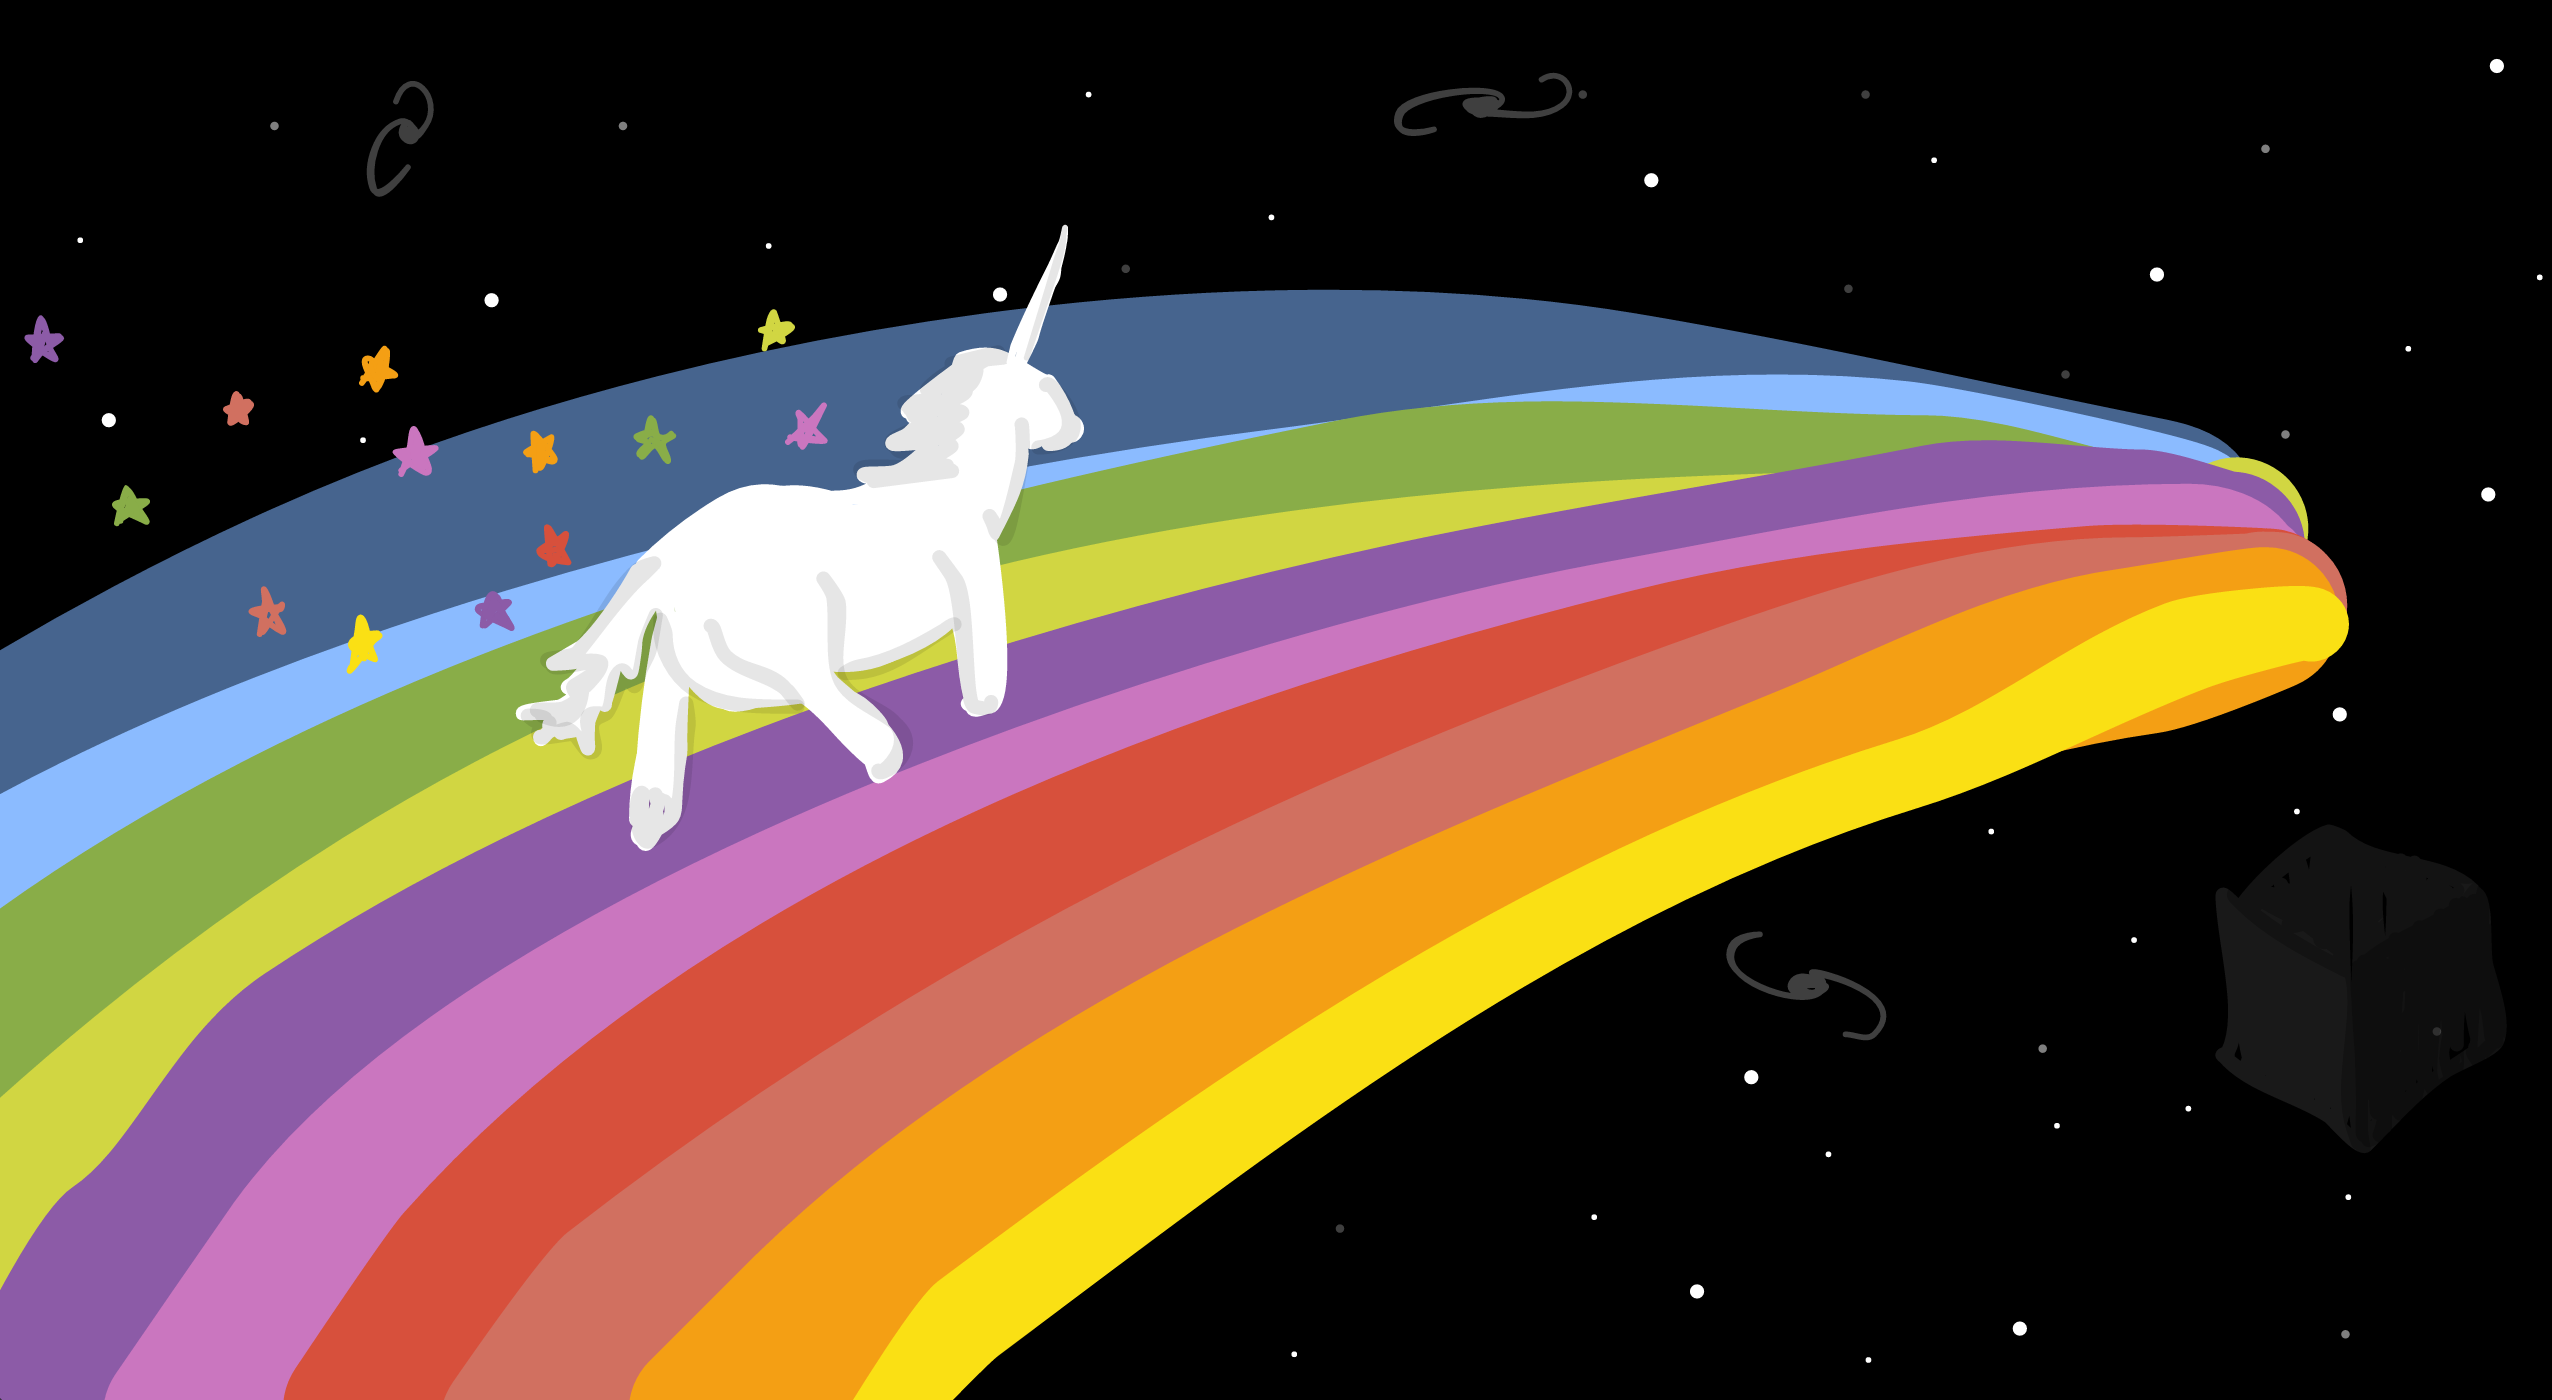 Faster PocketSmith is like a unicorn flying across a rainbow in space